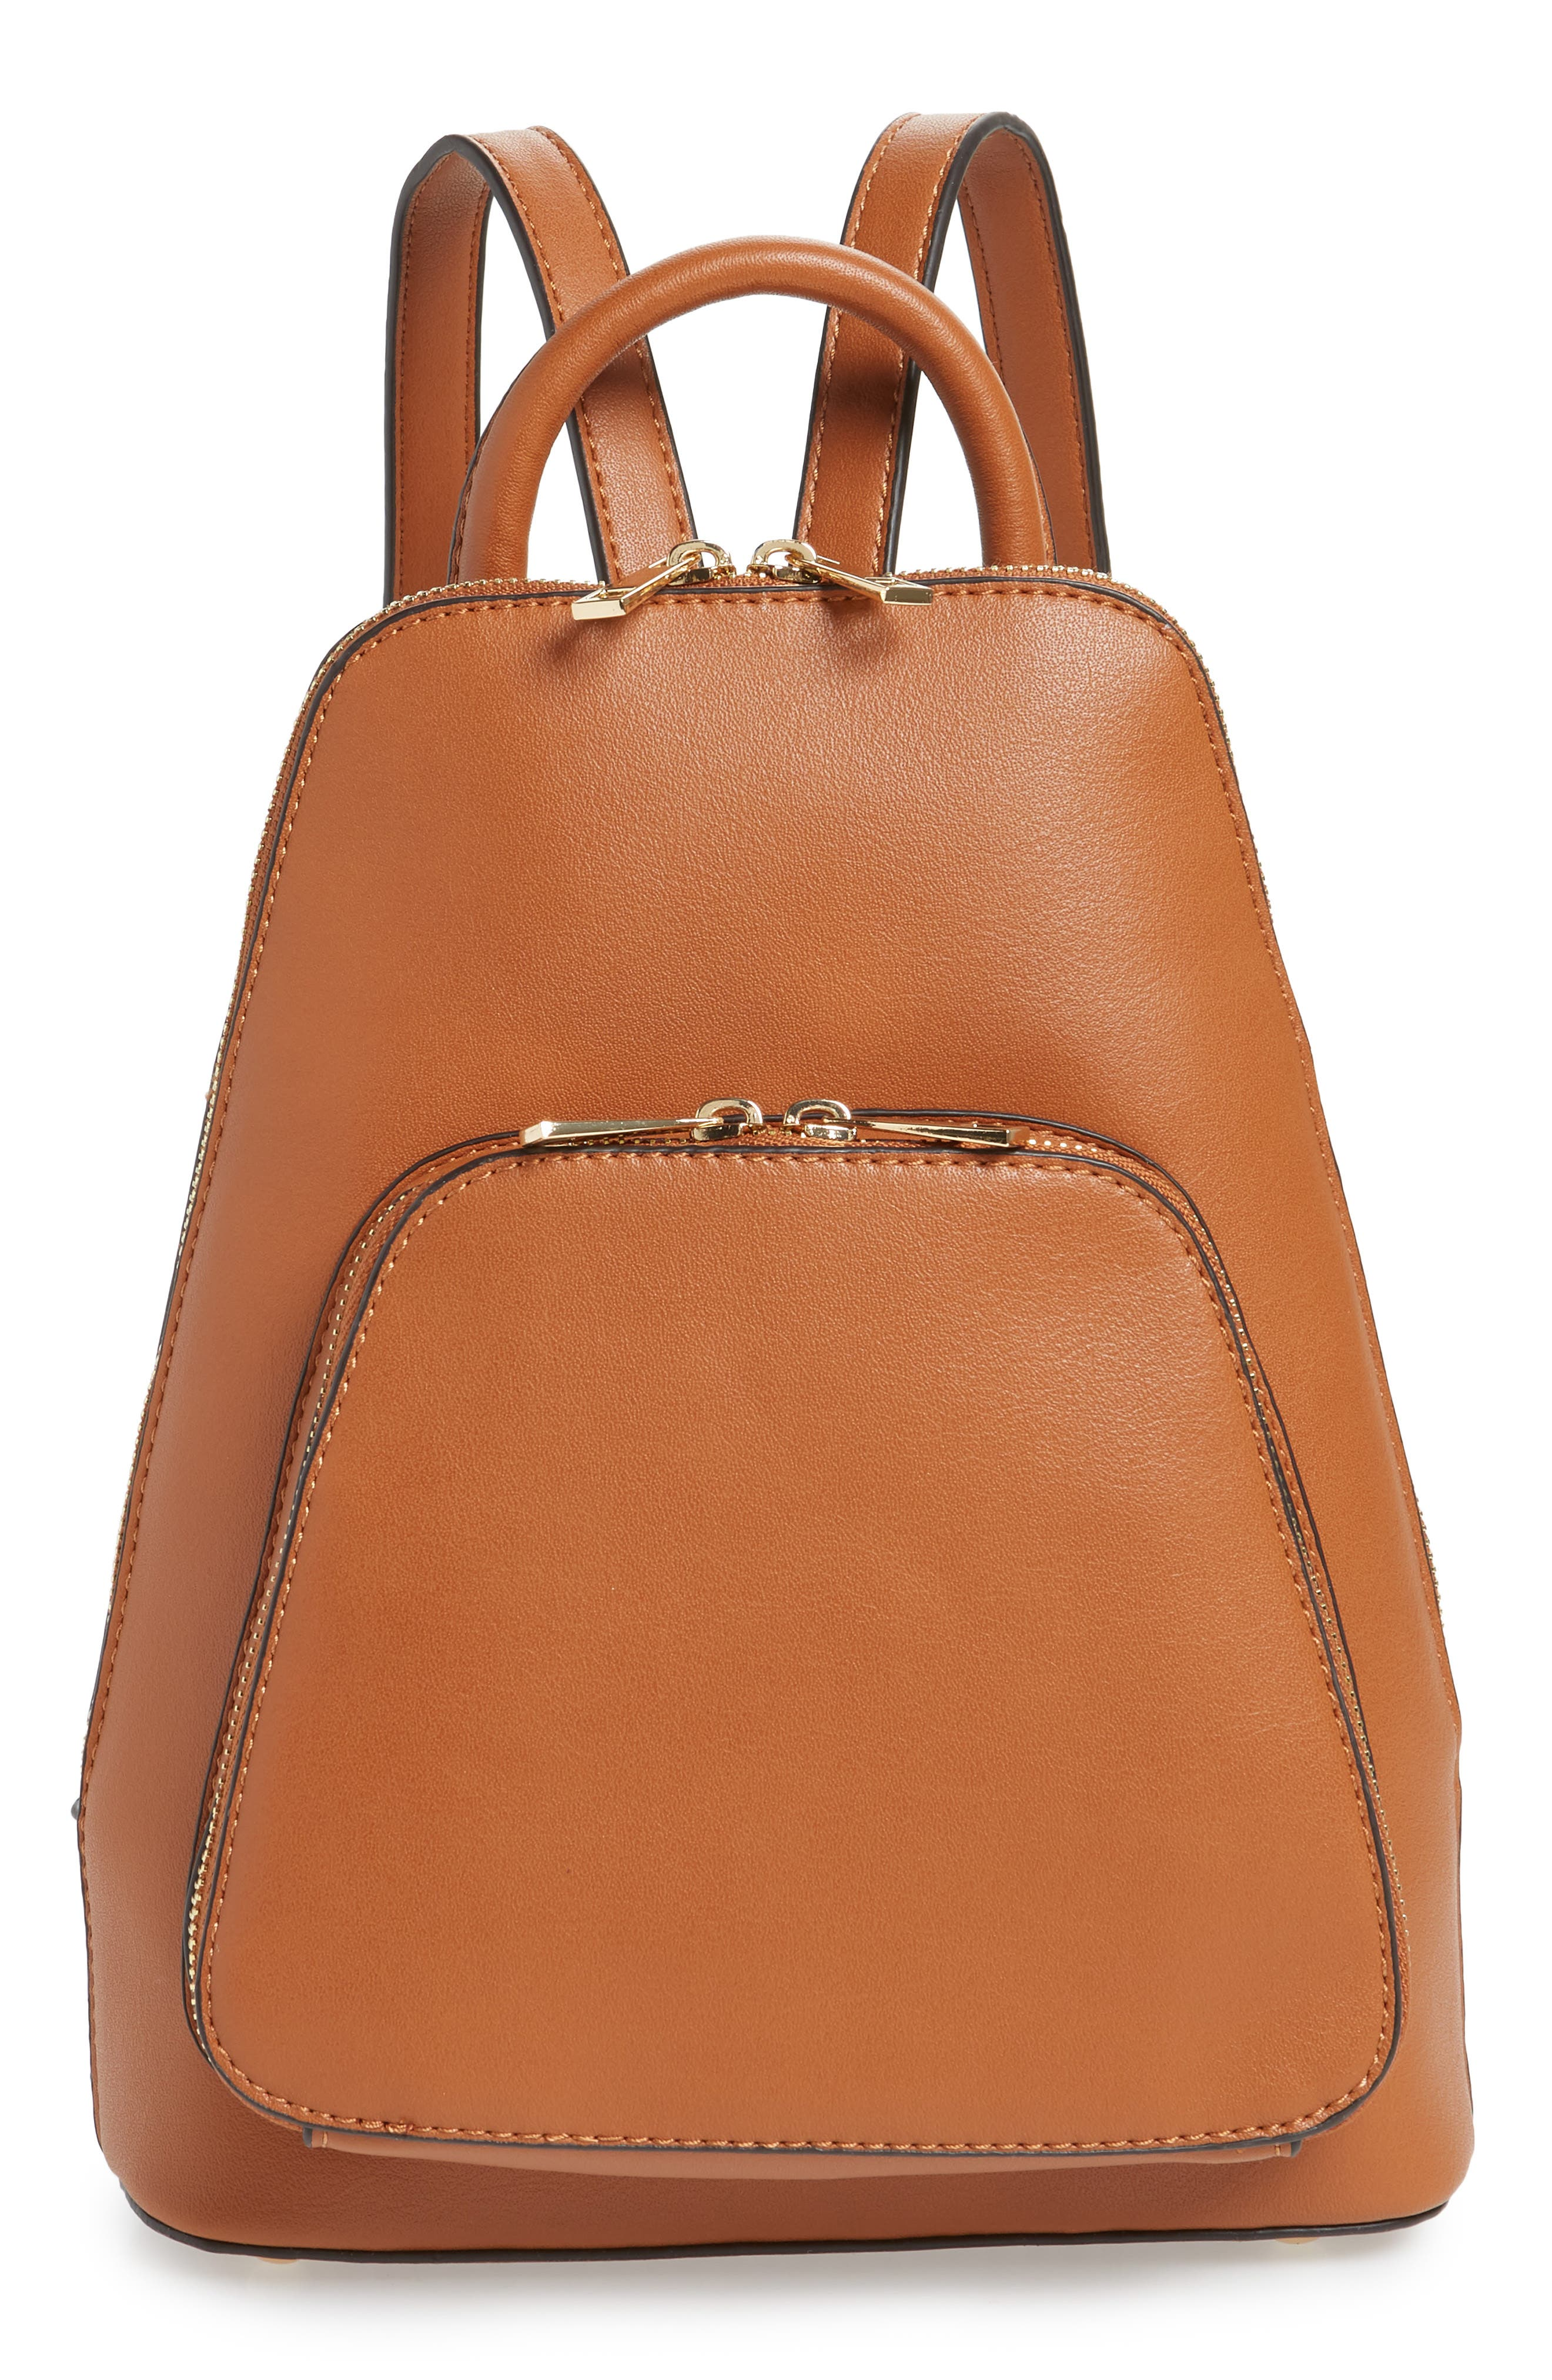 SOLE SOCIETY, Aushan Faux Leather Backpack, Main thumbnail 1, color, COGNAC